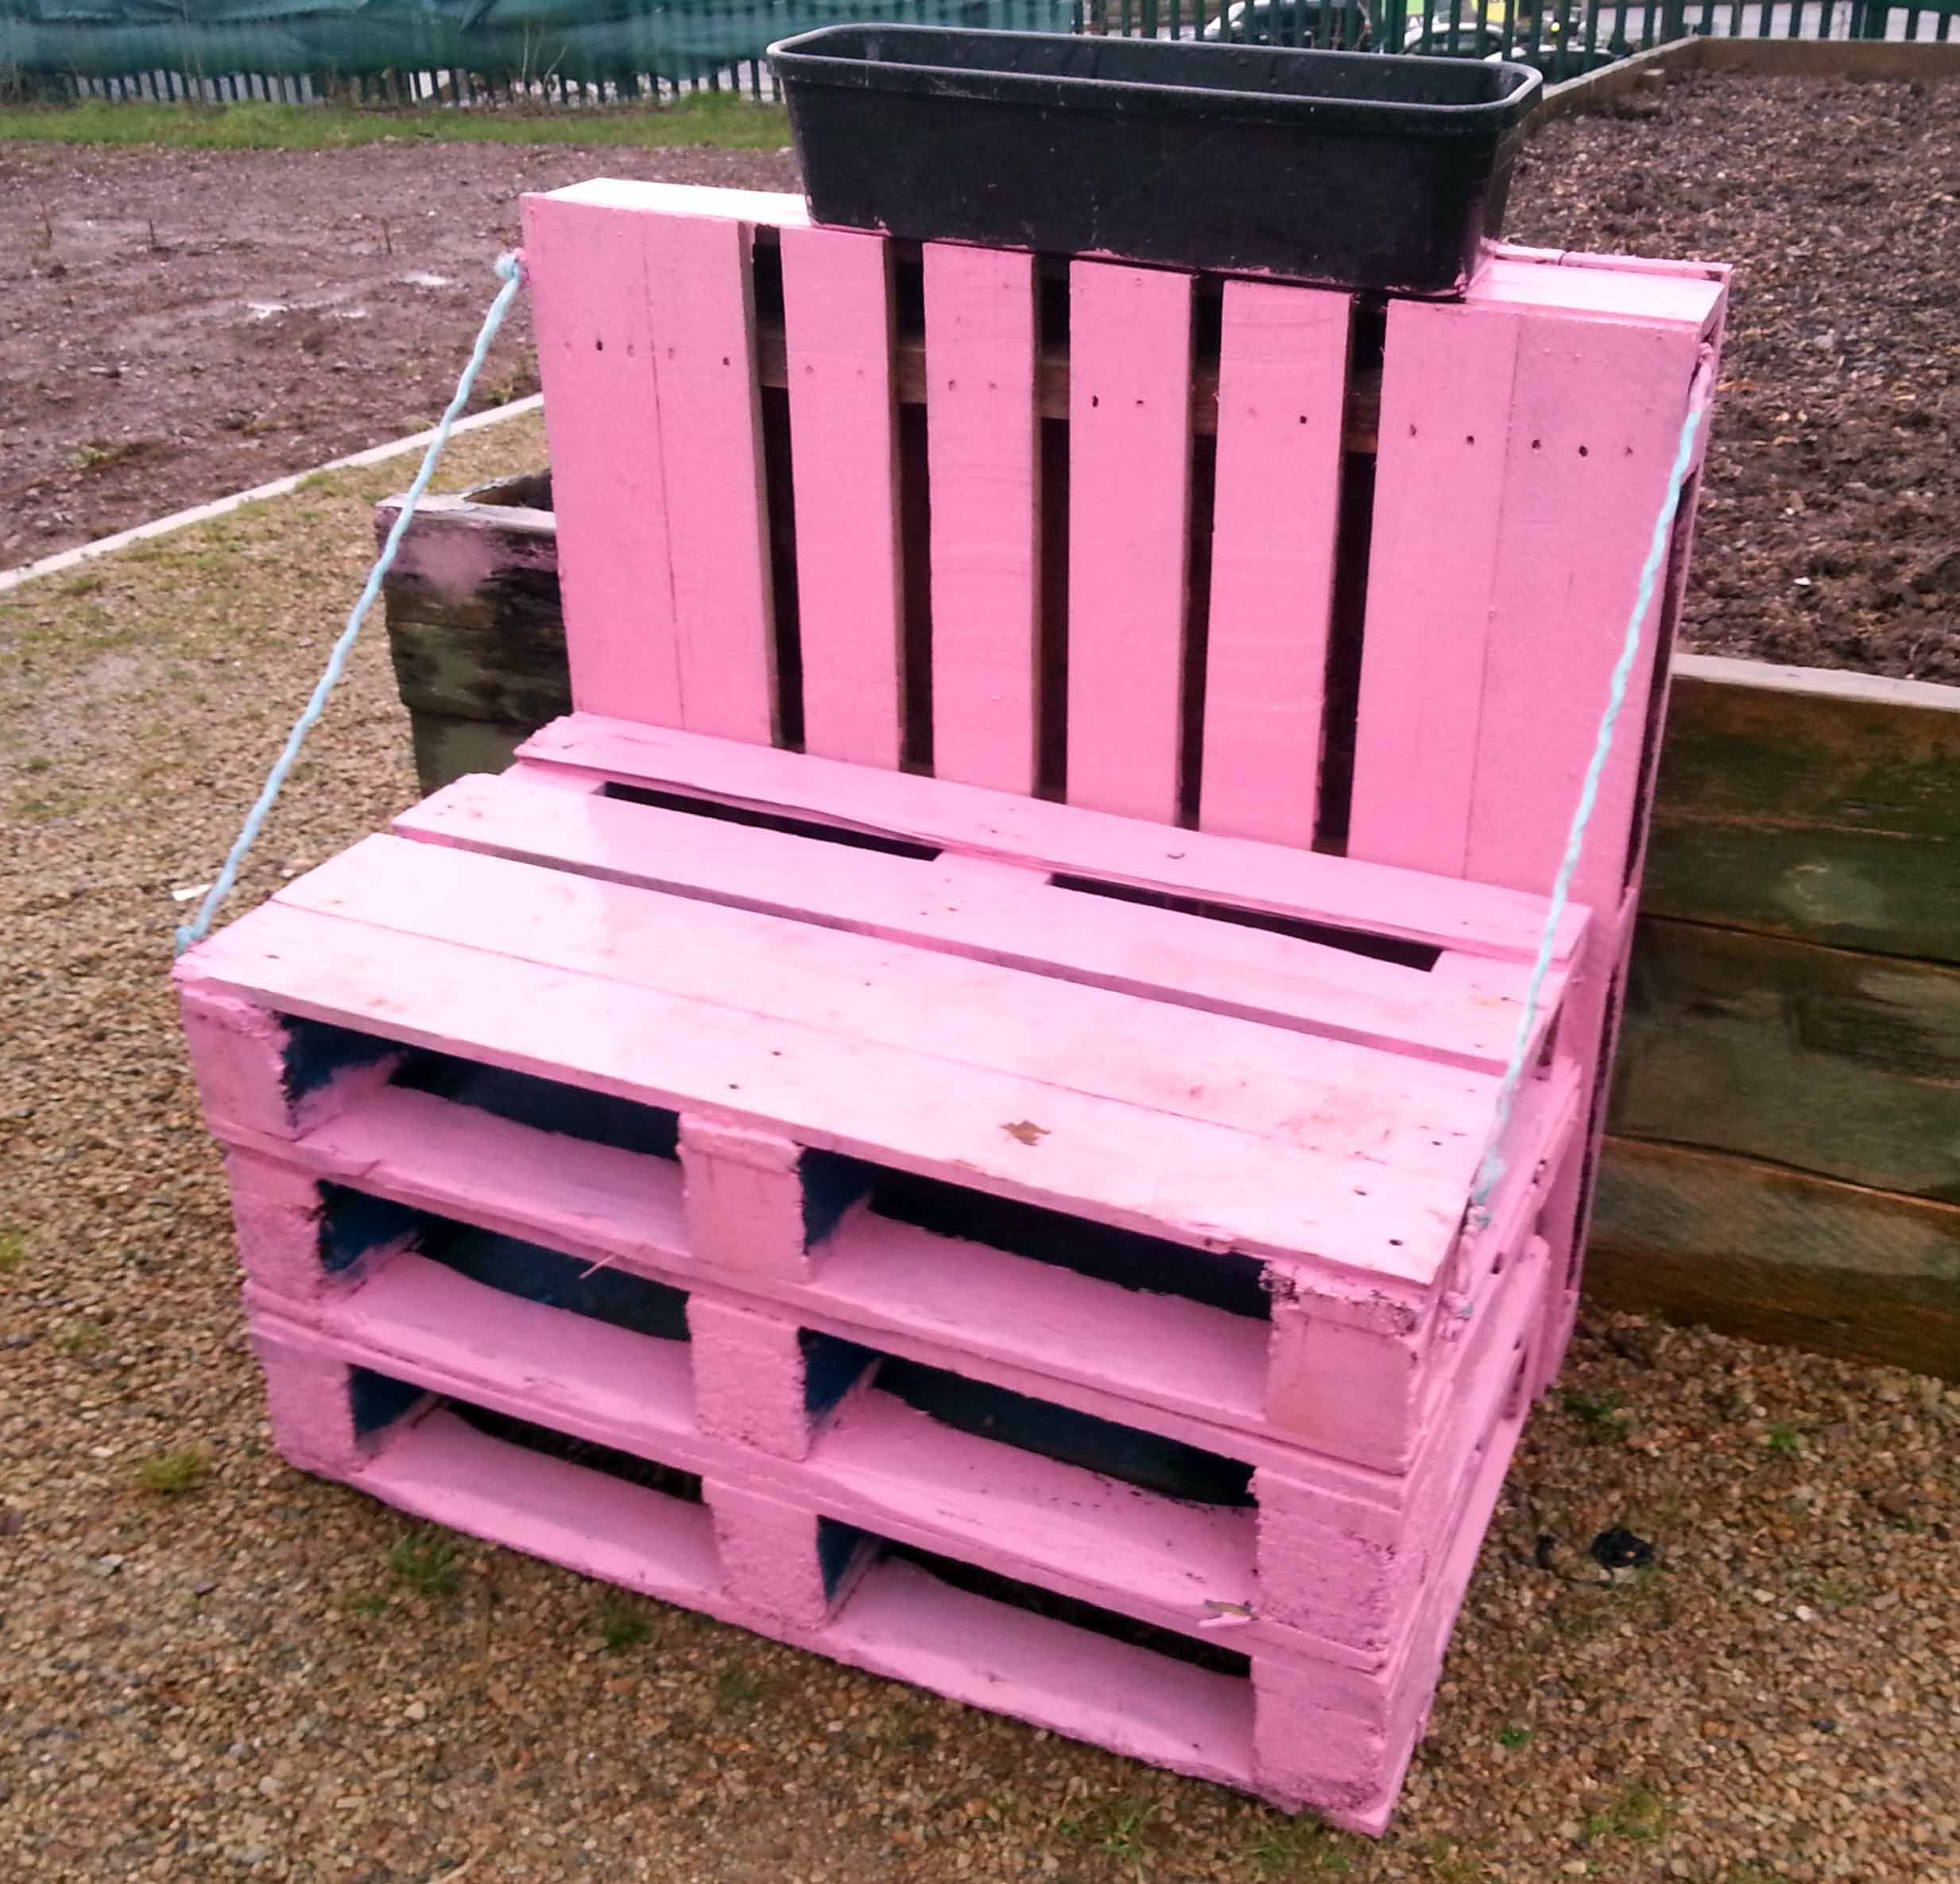 Upcycled pallet seating in a community garden